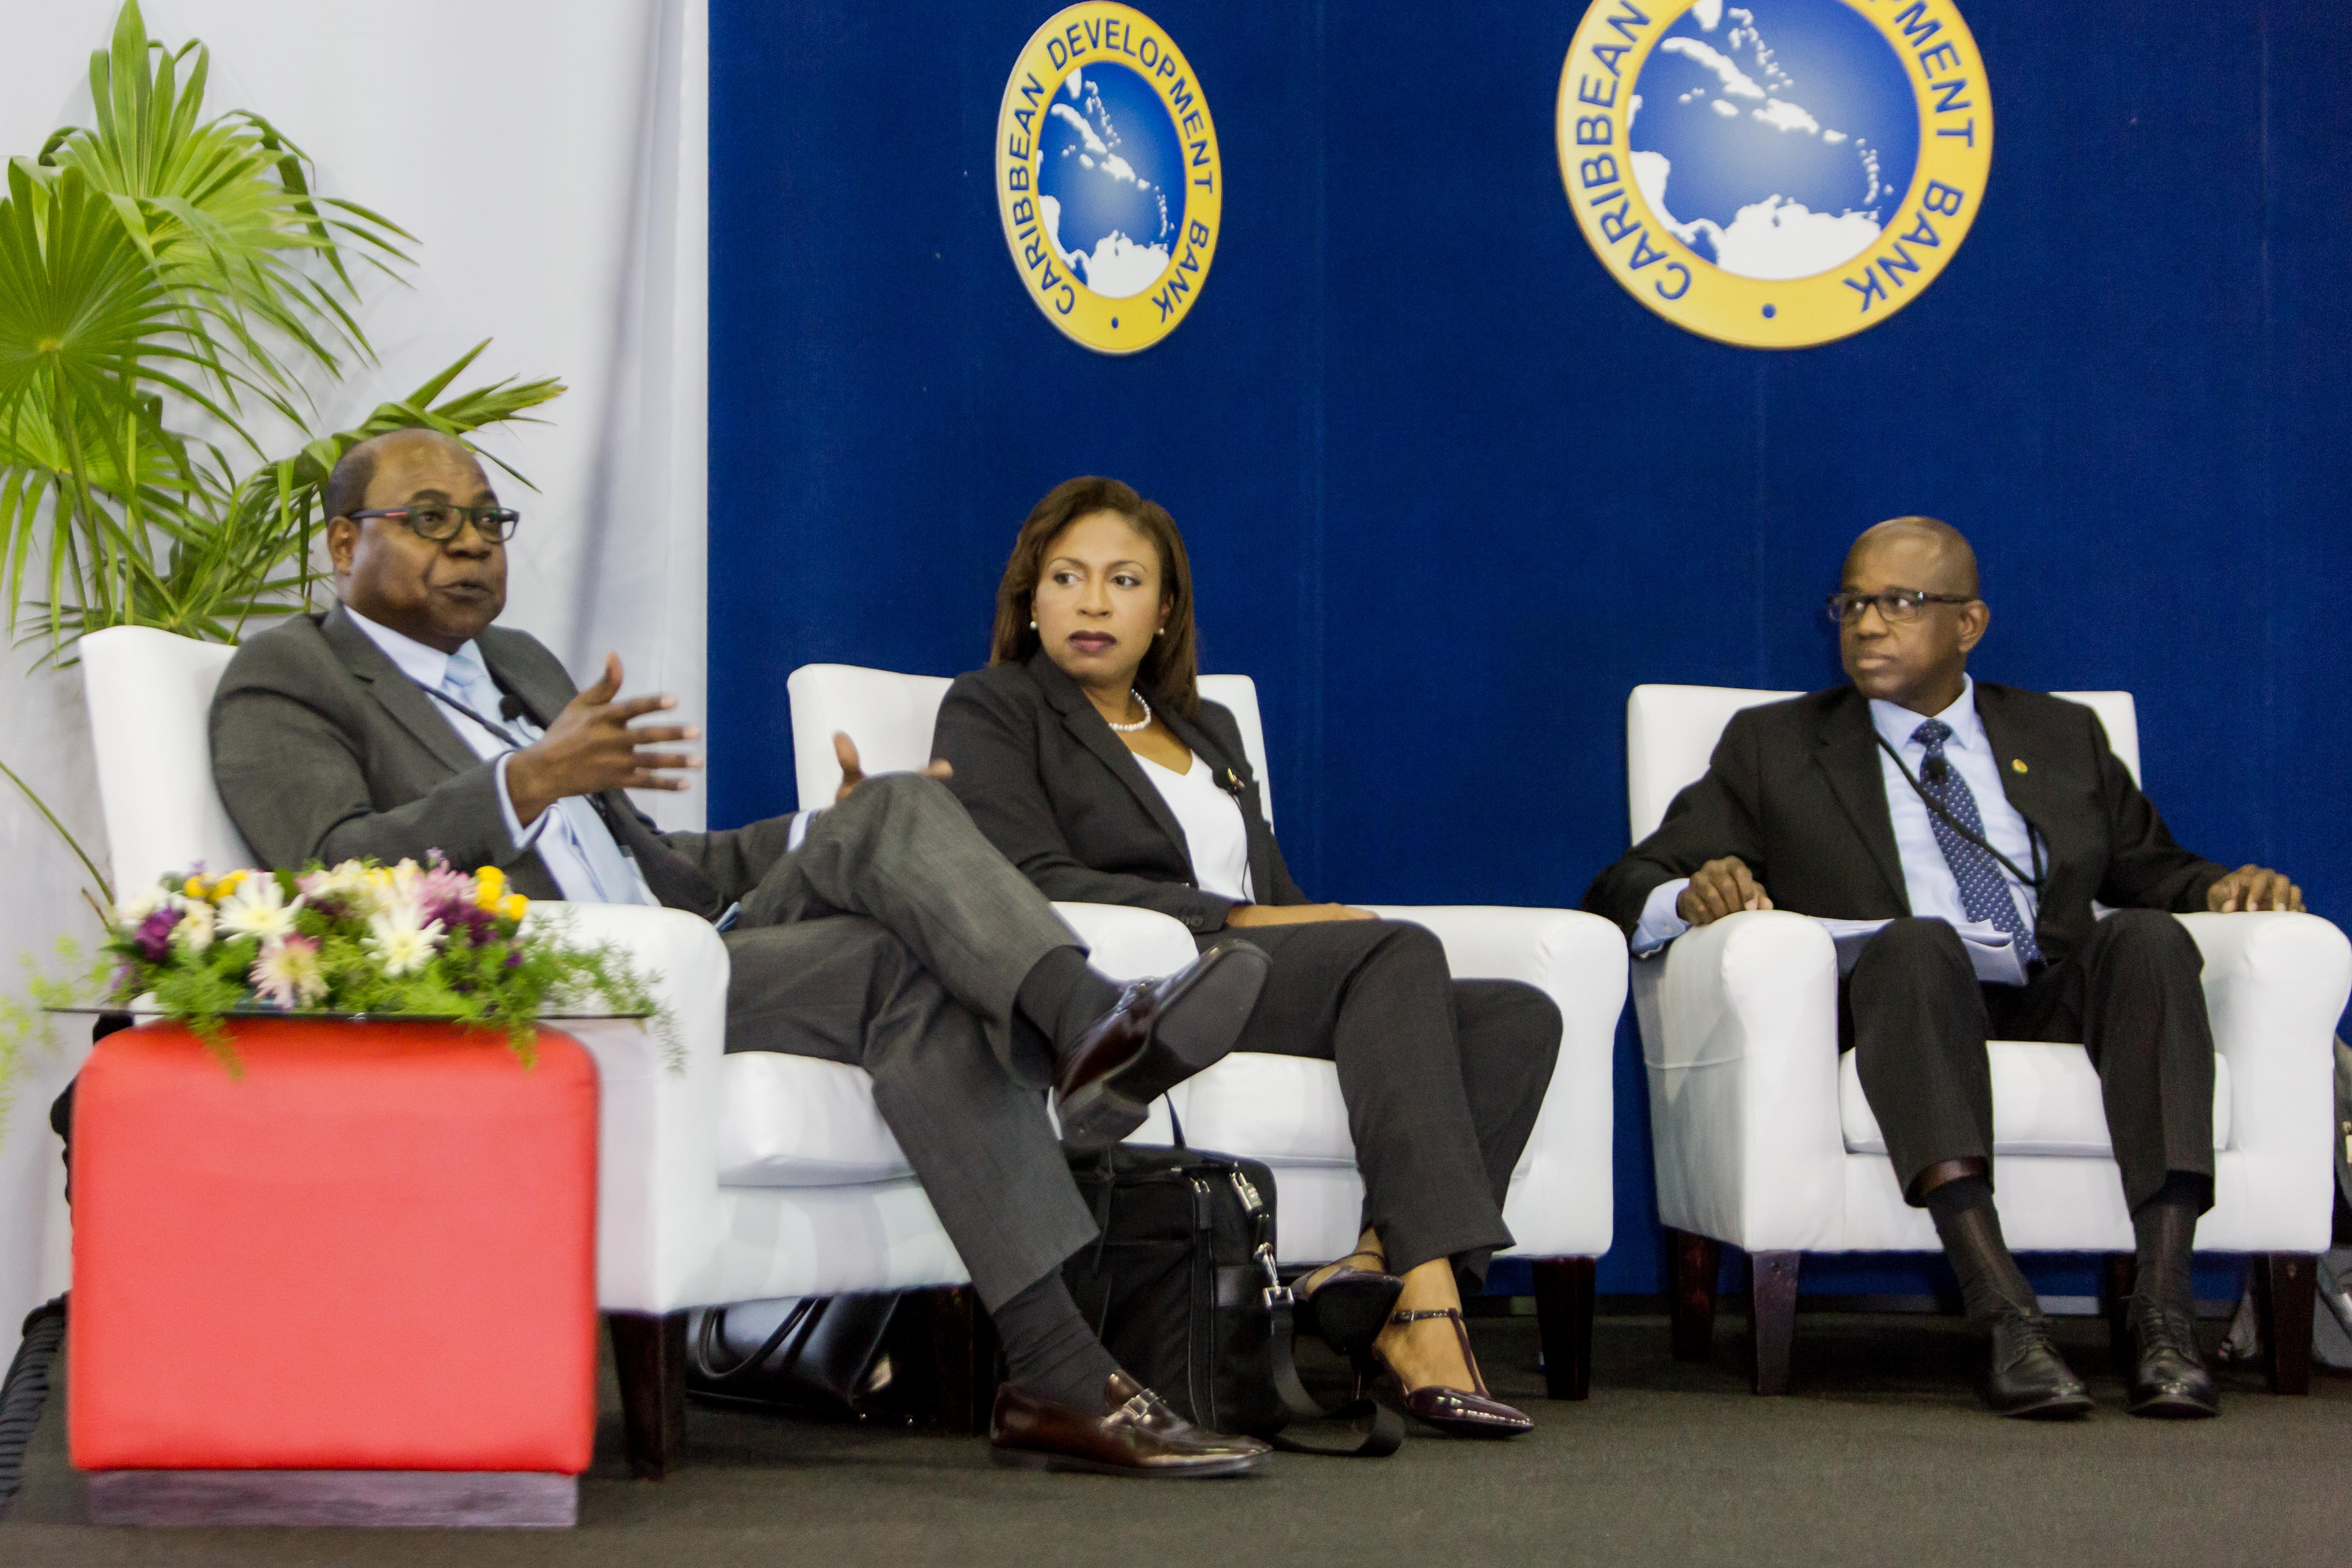 (L-R) Honourable Edmund Bartlett, Minister of Tourism, Government of Jamaica makes a point during the seminar, while Stacy Cox, Executive Director, Turks and Caicos Hotel and Tourism Association and Hugh Riley, Secretary General and Chief Executive Officer, Caribbean Tourism Organisation look on.